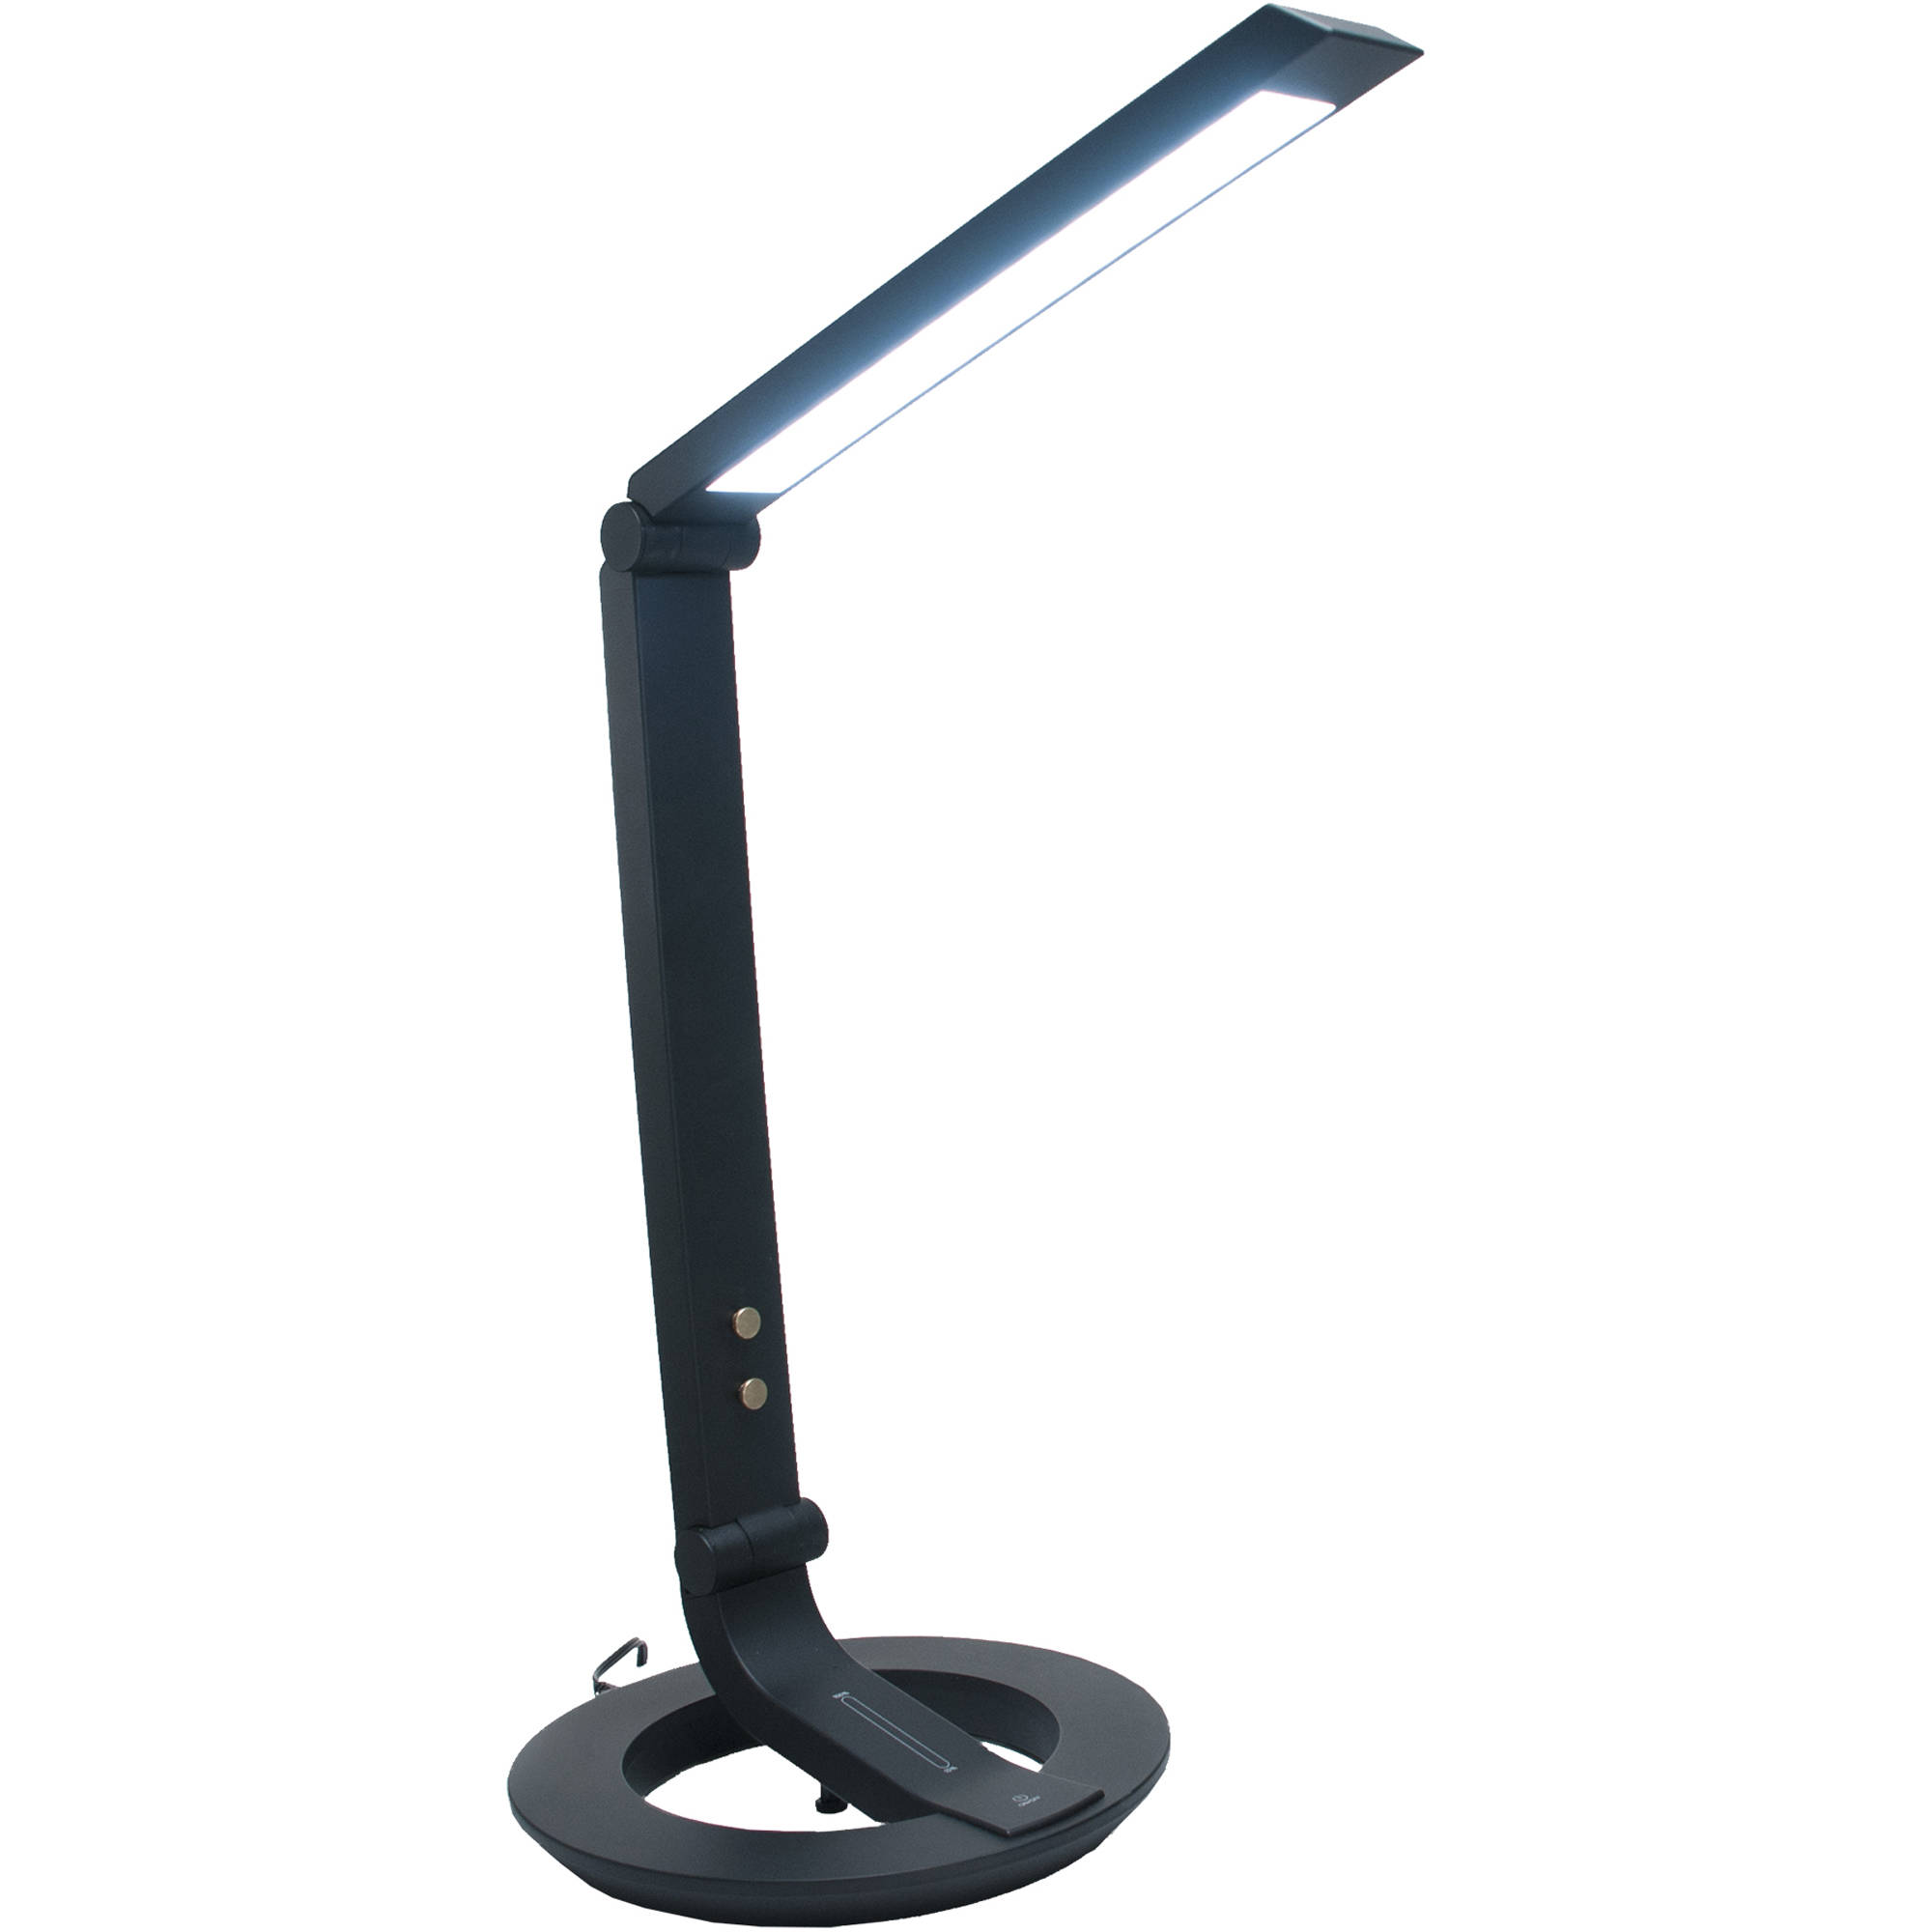 eofficeproducts desk enlarge product experts led furniture lamp lamps click decor to office lighting